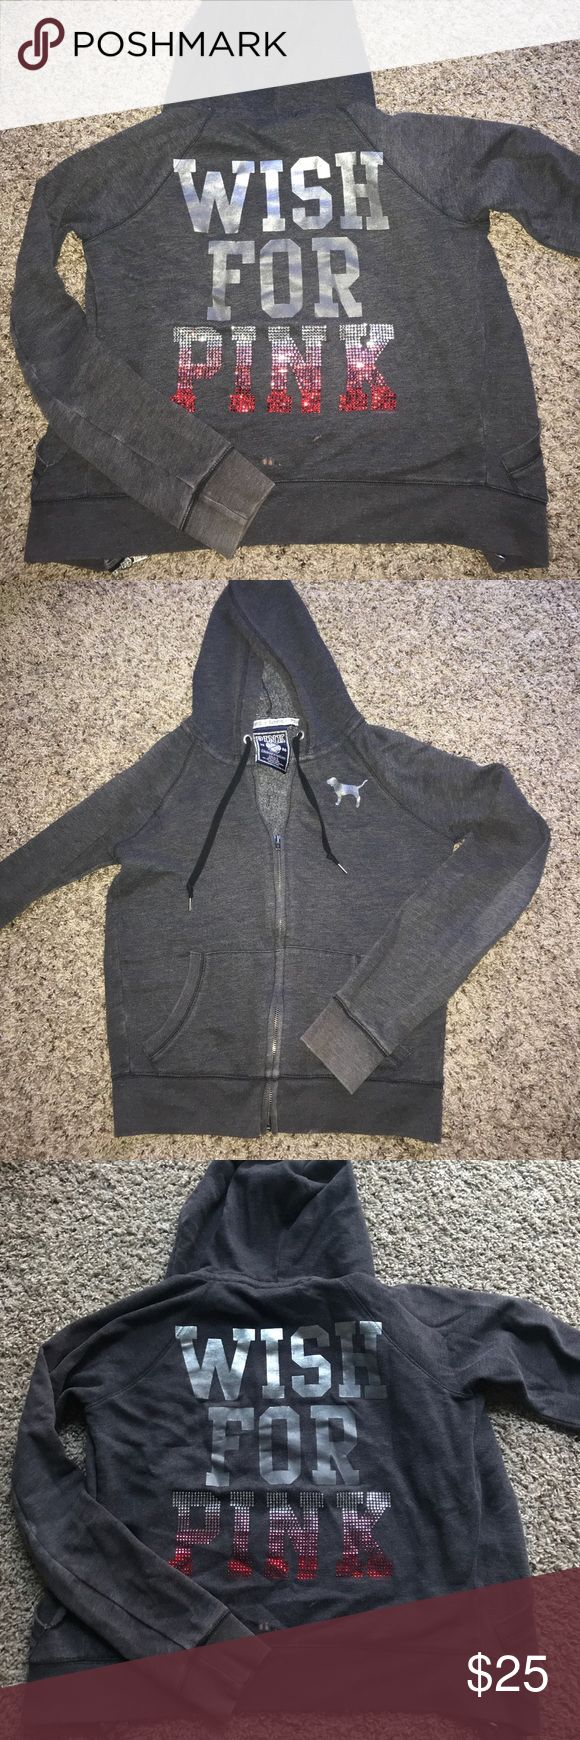 PINK VICTORIAS SECRET ZIP UP HOODIE Dark Gray. Metallic dog on front. Worn several times, in good condition though! Zipper is functional. All crystals on lettering are still in tact! There is a very tiny bleach mark on the back of the jacket towards the bottom  (I added a photo of this) super comfortable and cute for lounging and the holidays!! 🎄 PINK Tops Sweatshirts & Hoodies